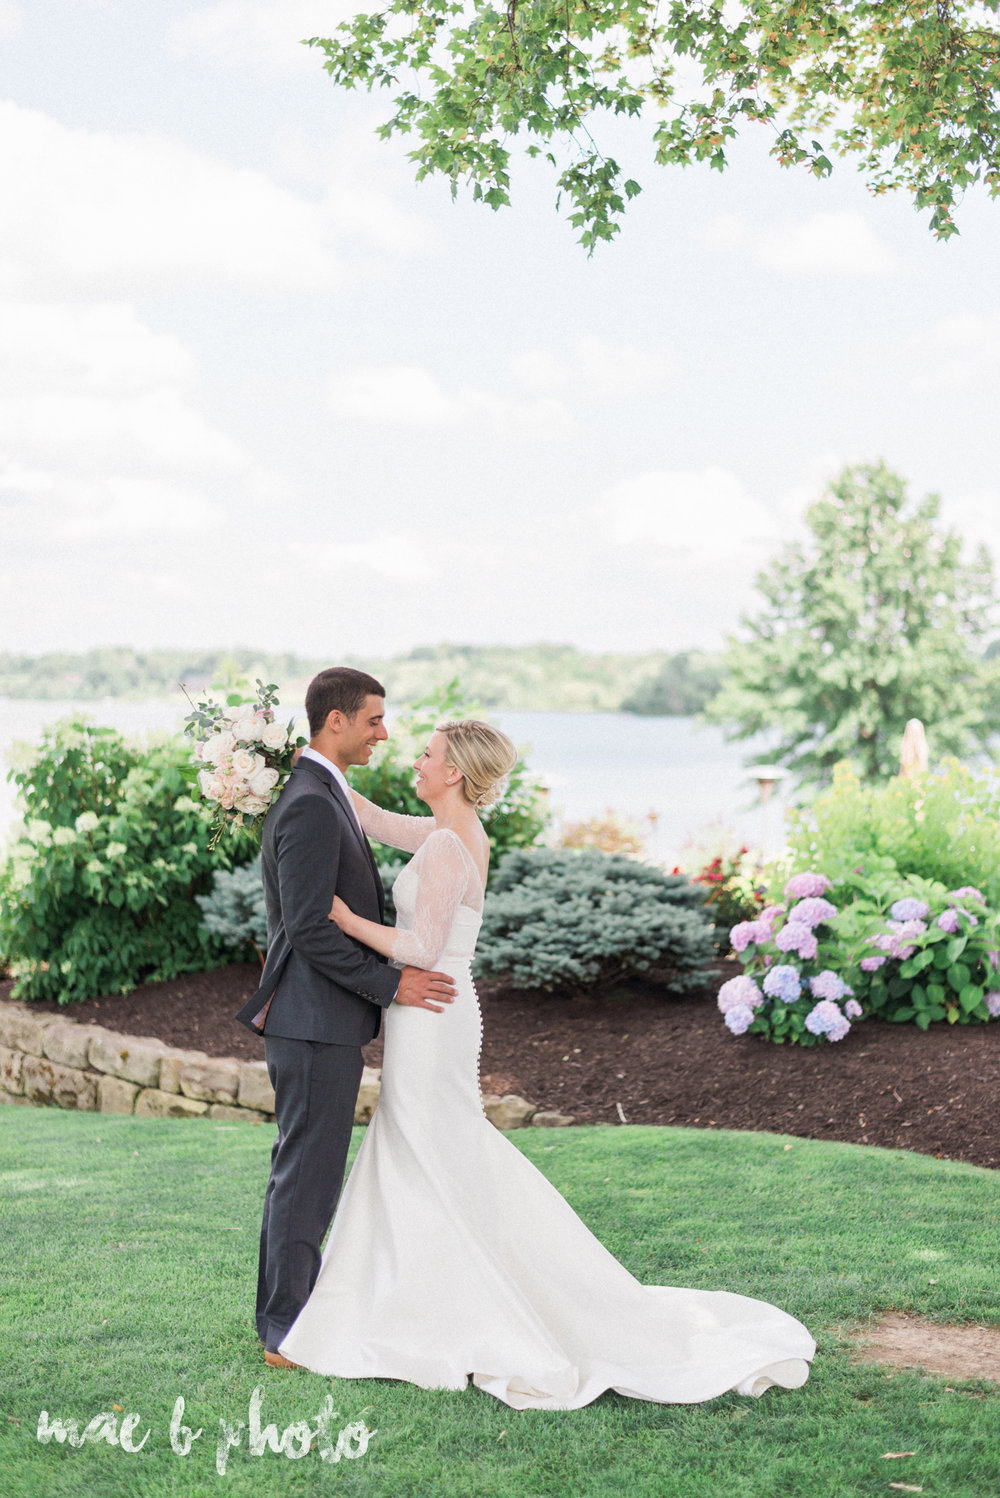 emily and michael's industrial chic summer country club wedding at the lake club in poland ohio photographed by cleveland wedding photographer mae b photo-55.jpg